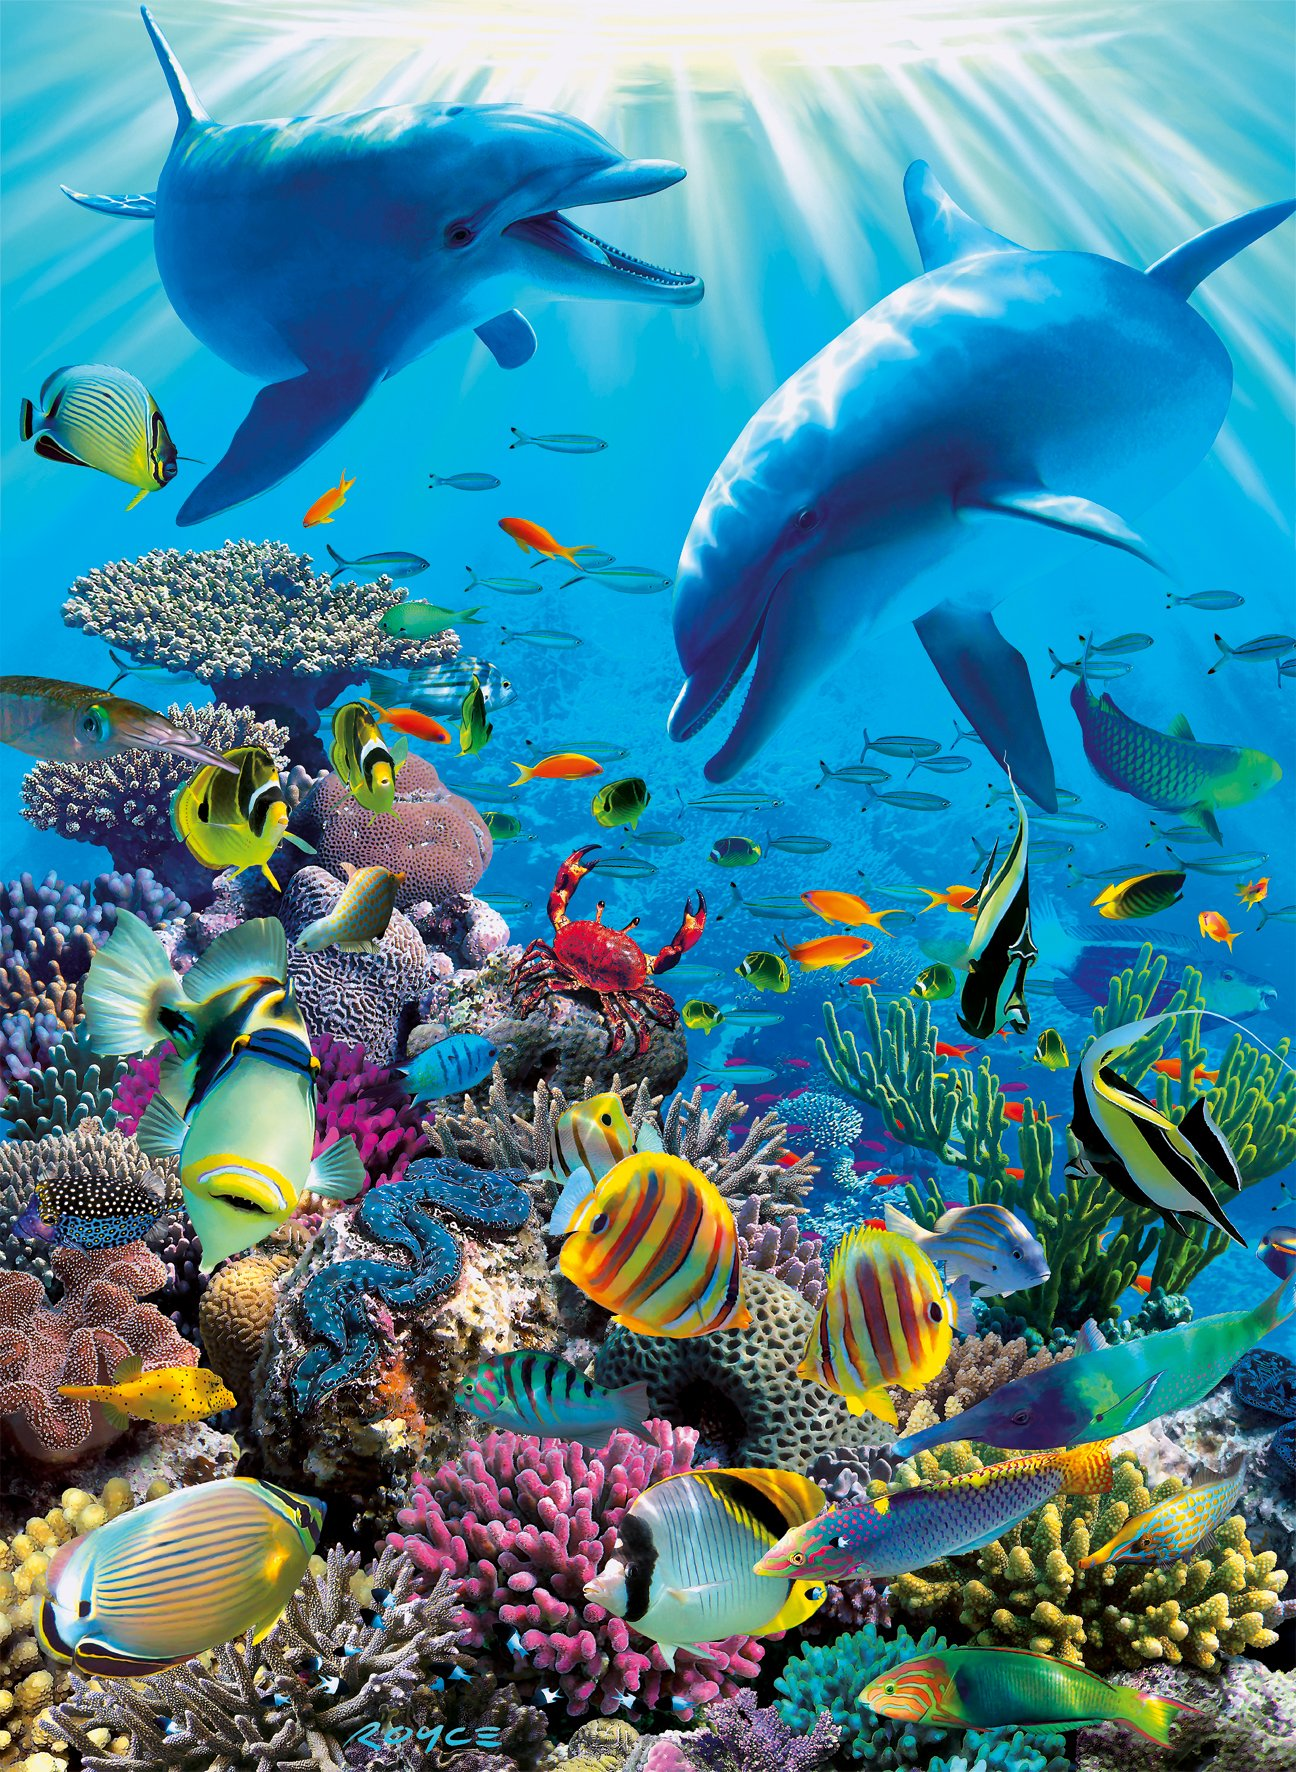 Ravensburger Underwater Adventure 300 Piece Jigsaw Puzzle for Kids – Every Piece is Unique, Pieces Fit Together Perfectly